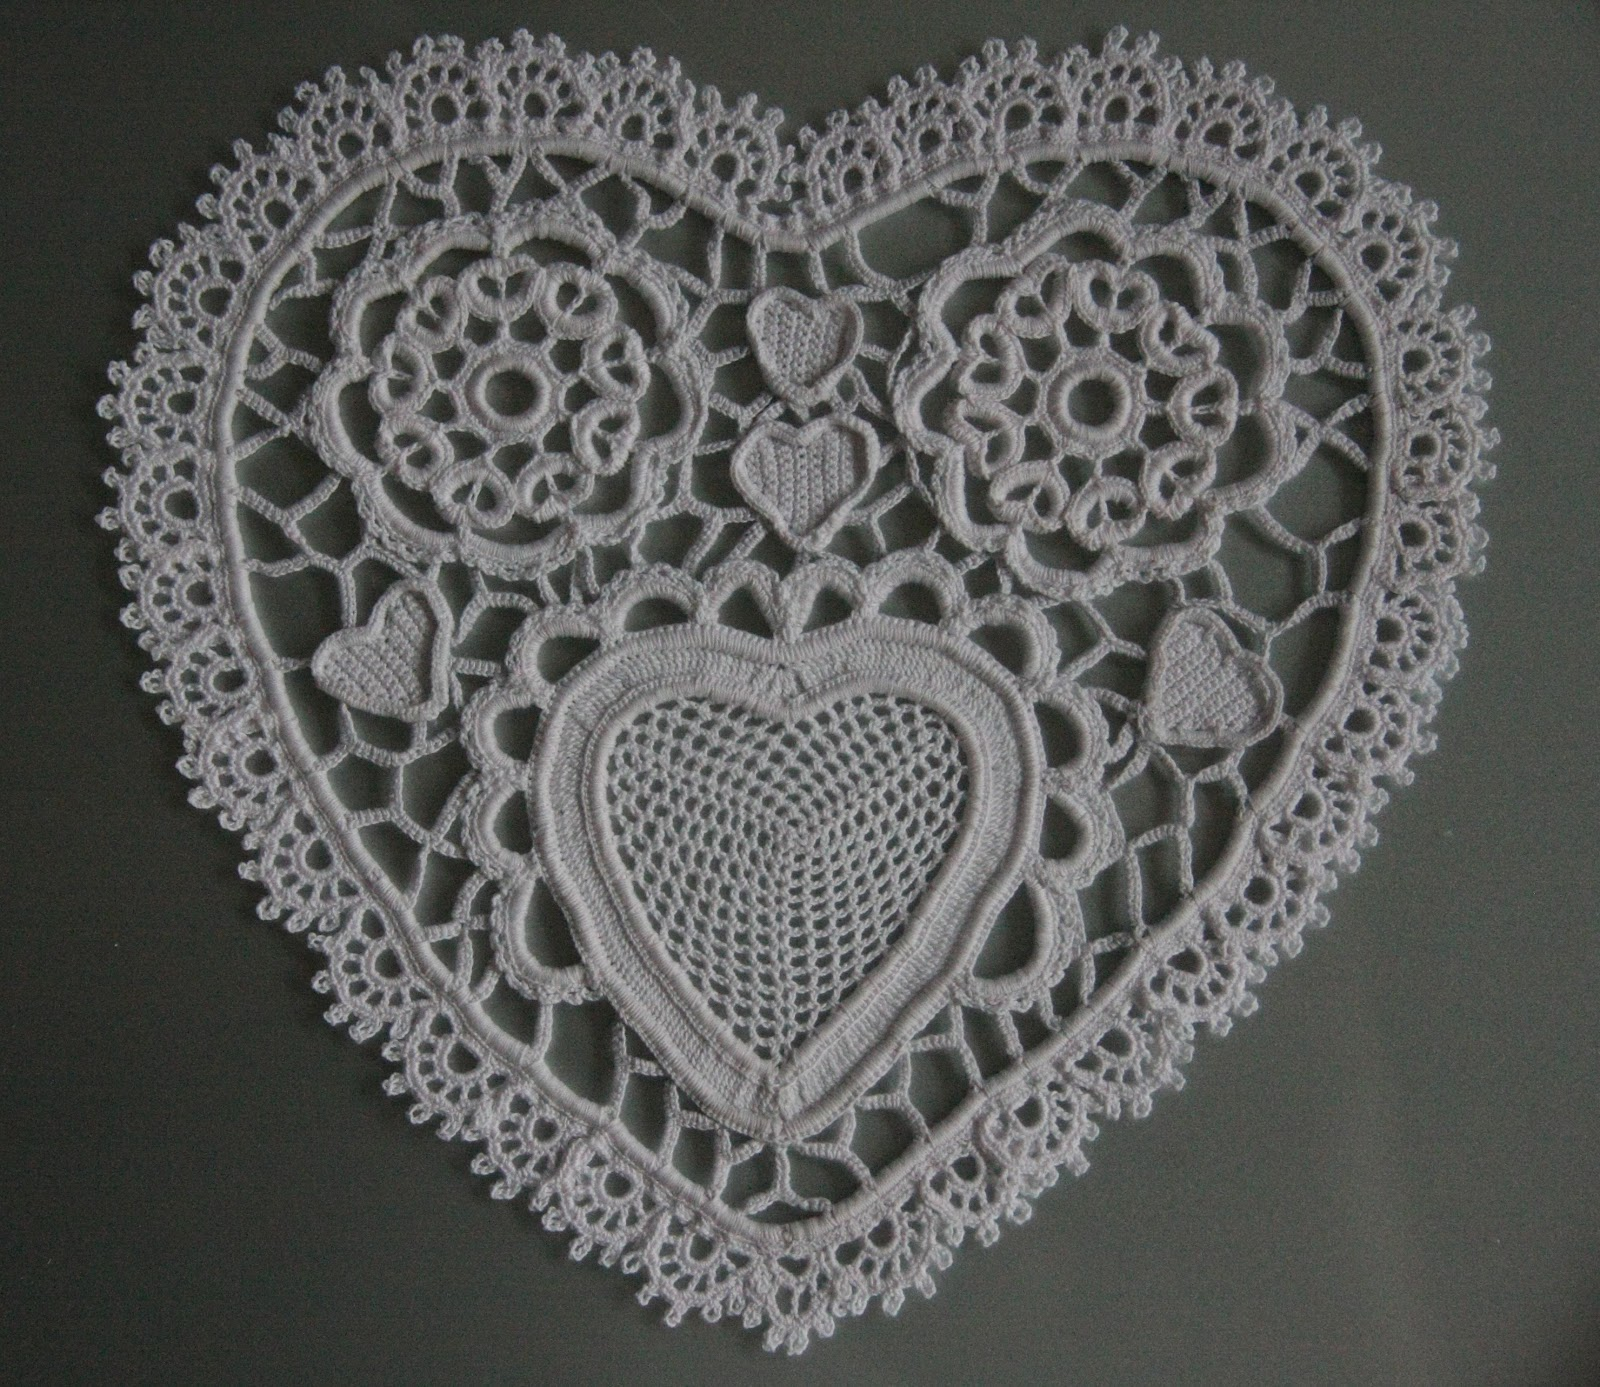 Free Crochet Pattern For Heart Doily : The Laboratory: Paper Heart Doily in Irish crochet